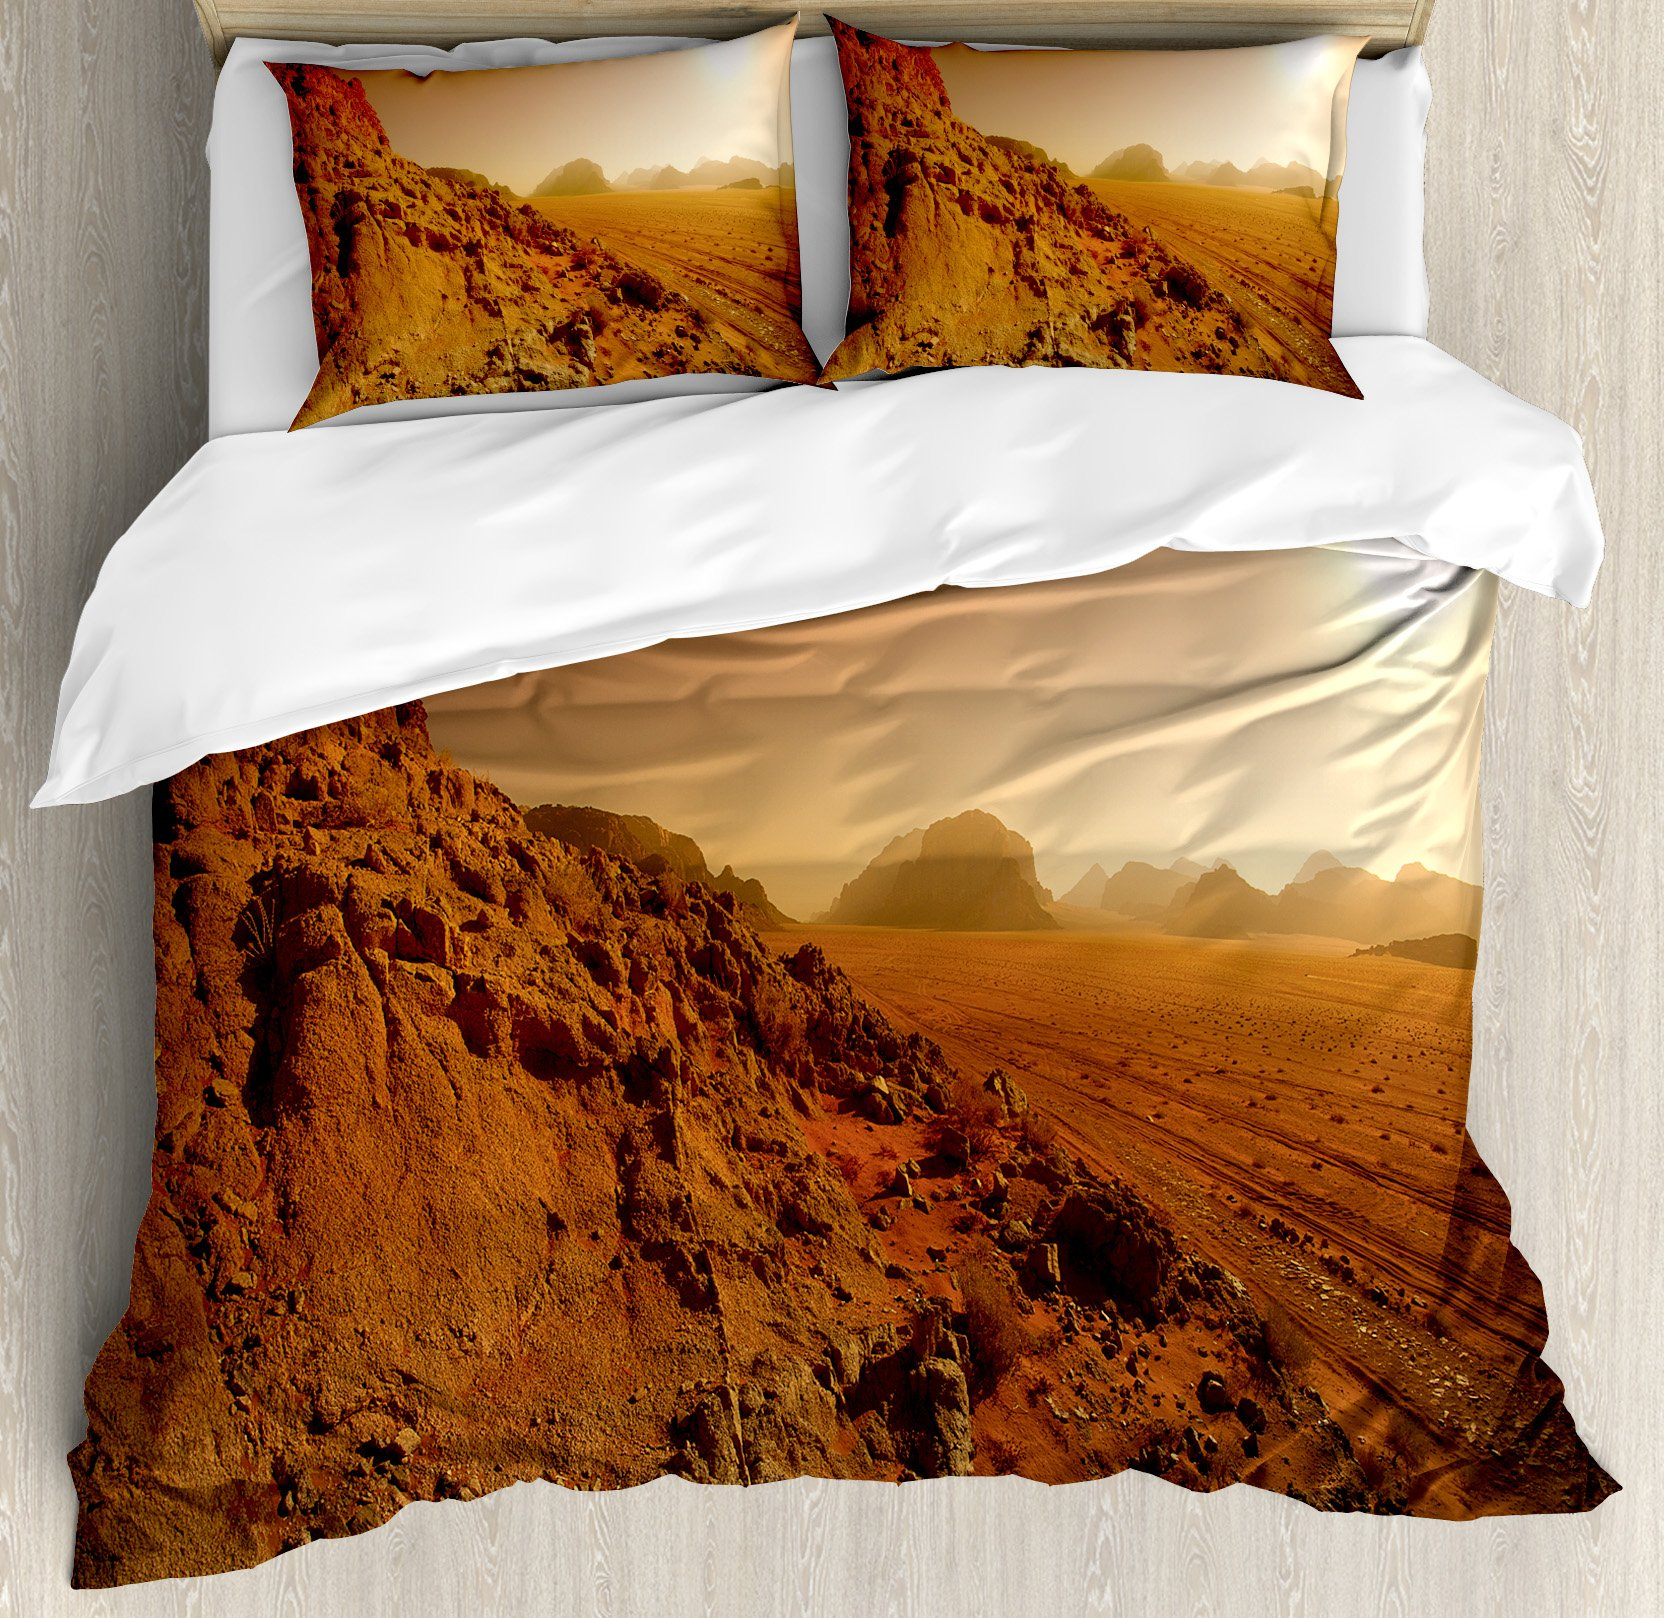 Galaxy Duvet Cover Set by Ambesonne, Landscape from the Movie Fantastic Fictional Galaxy War Pattern Sunset Mountains, 3 Piece Bedding Set with Pillow Shams, Queen / Full, Brown Yellow